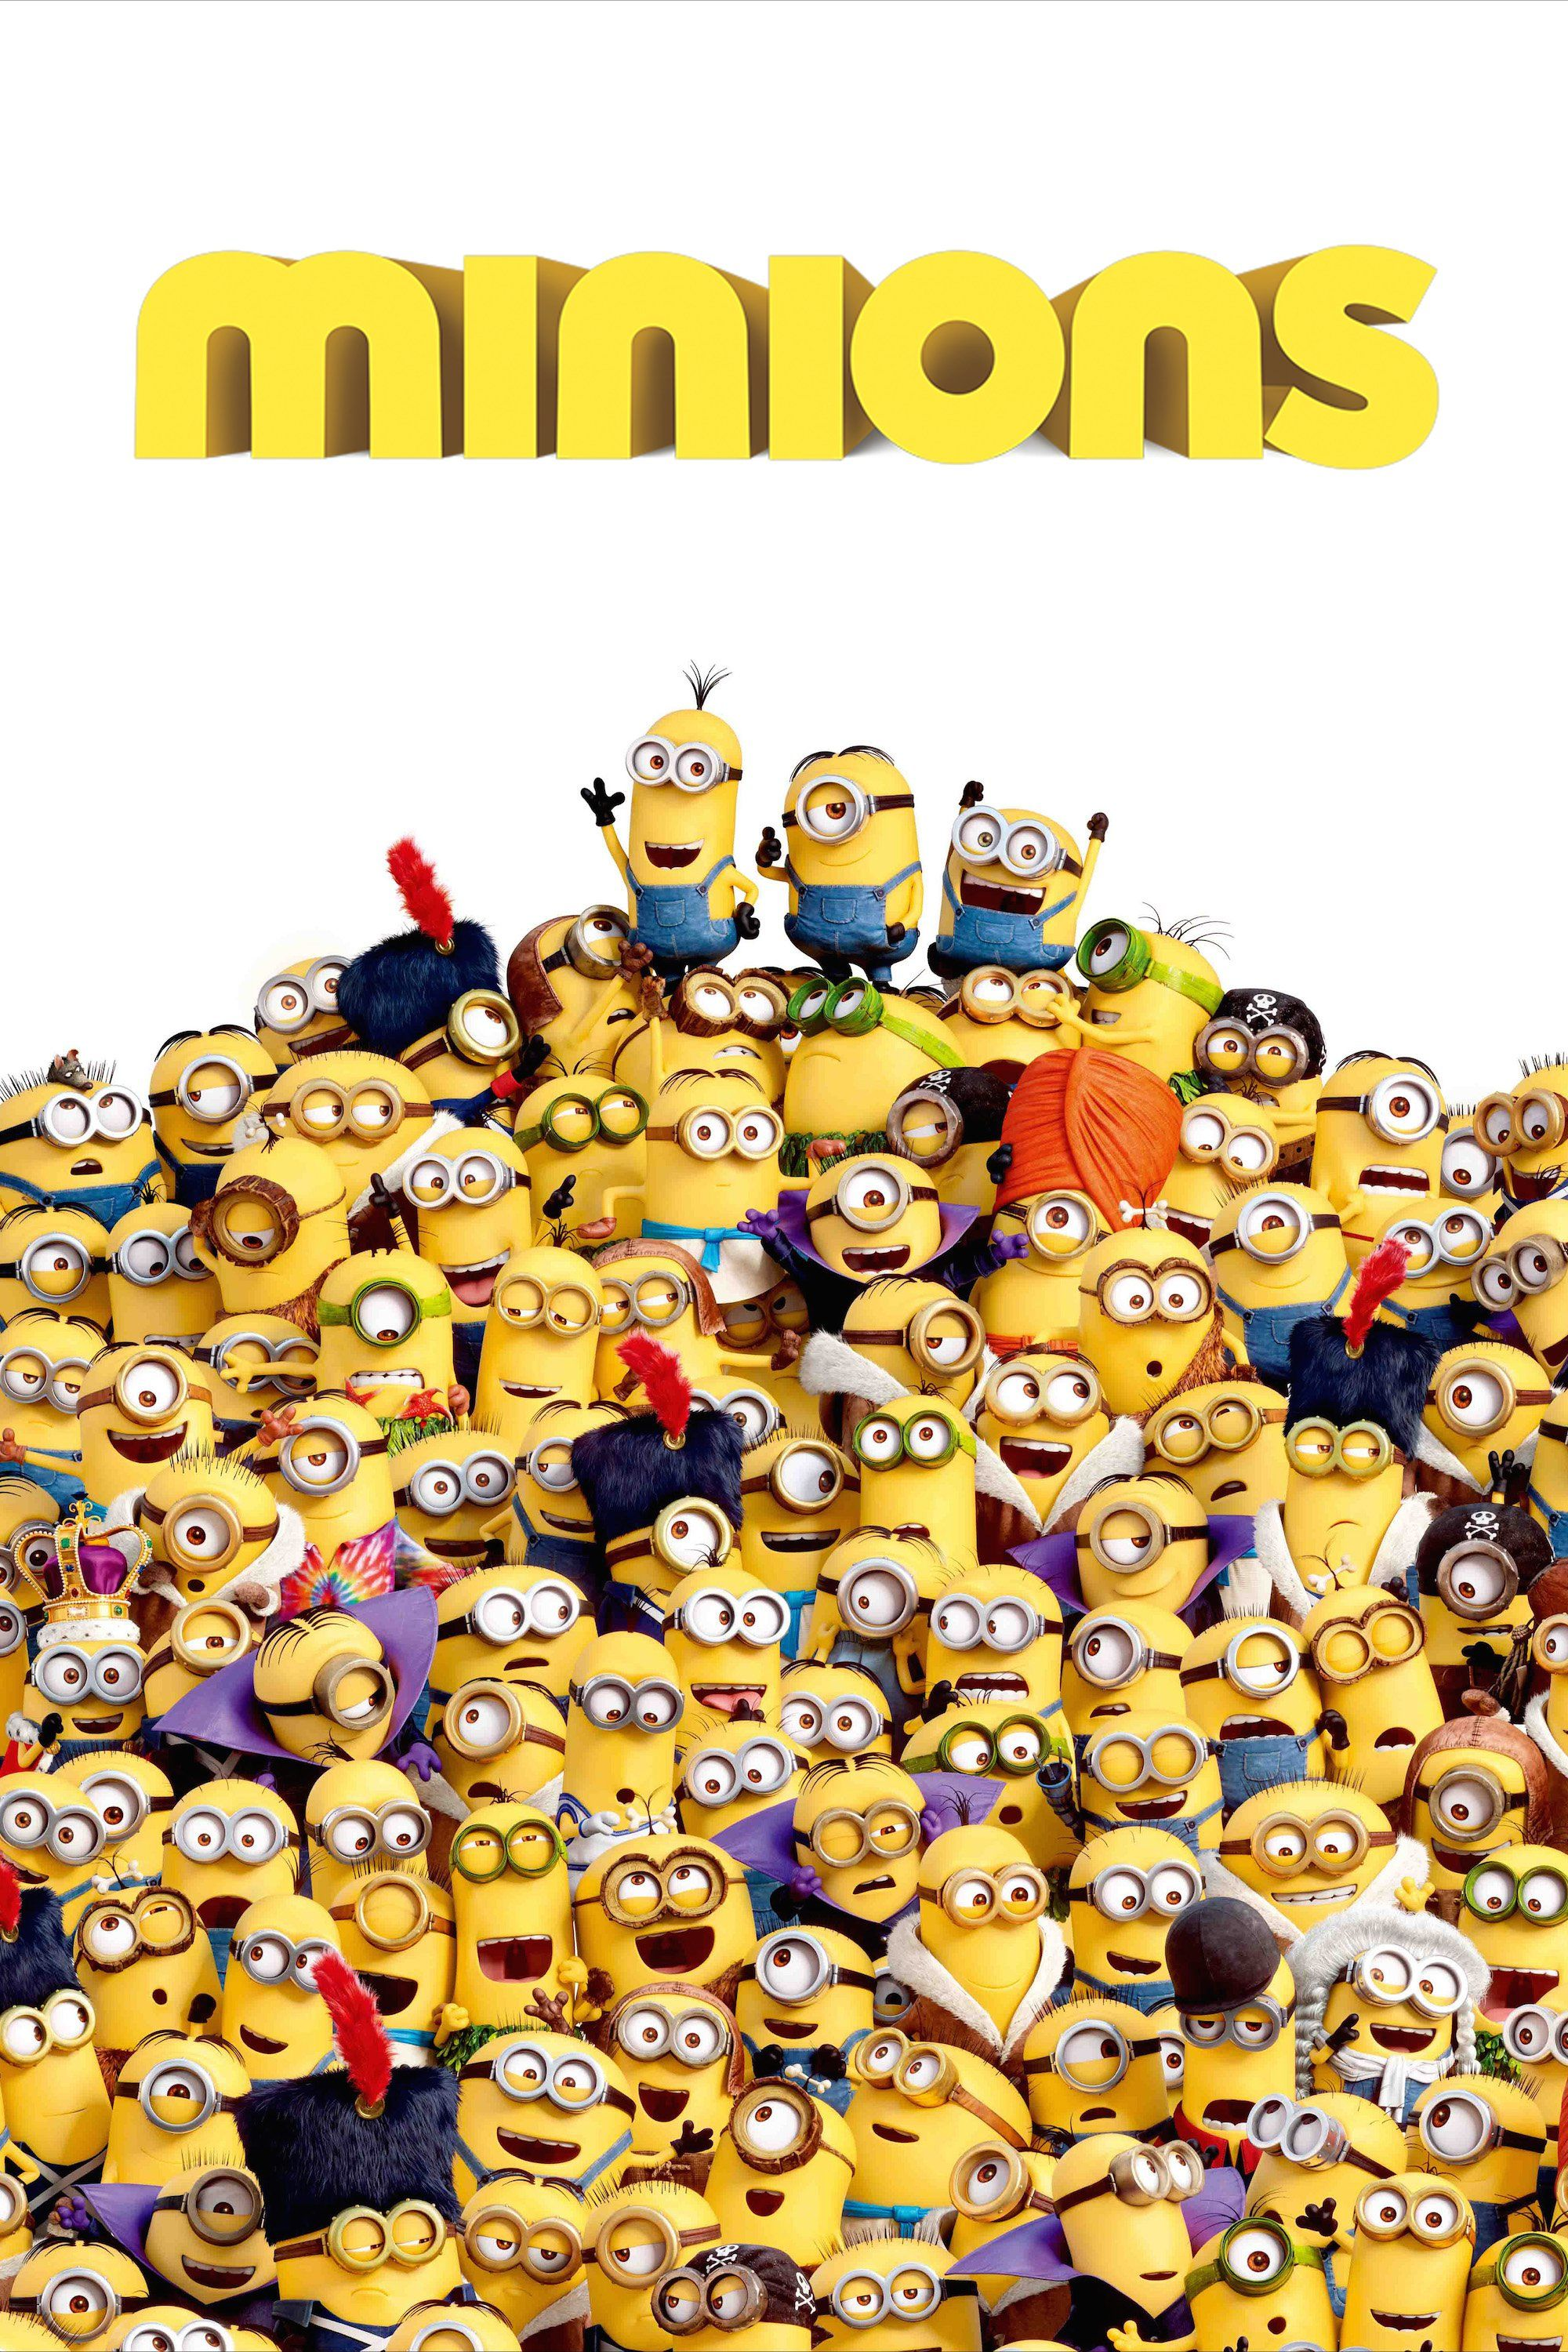 minions 2015 free hd streaming online streaming movie pinterest scarlet bobs and dr who. Black Bedroom Furniture Sets. Home Design Ideas